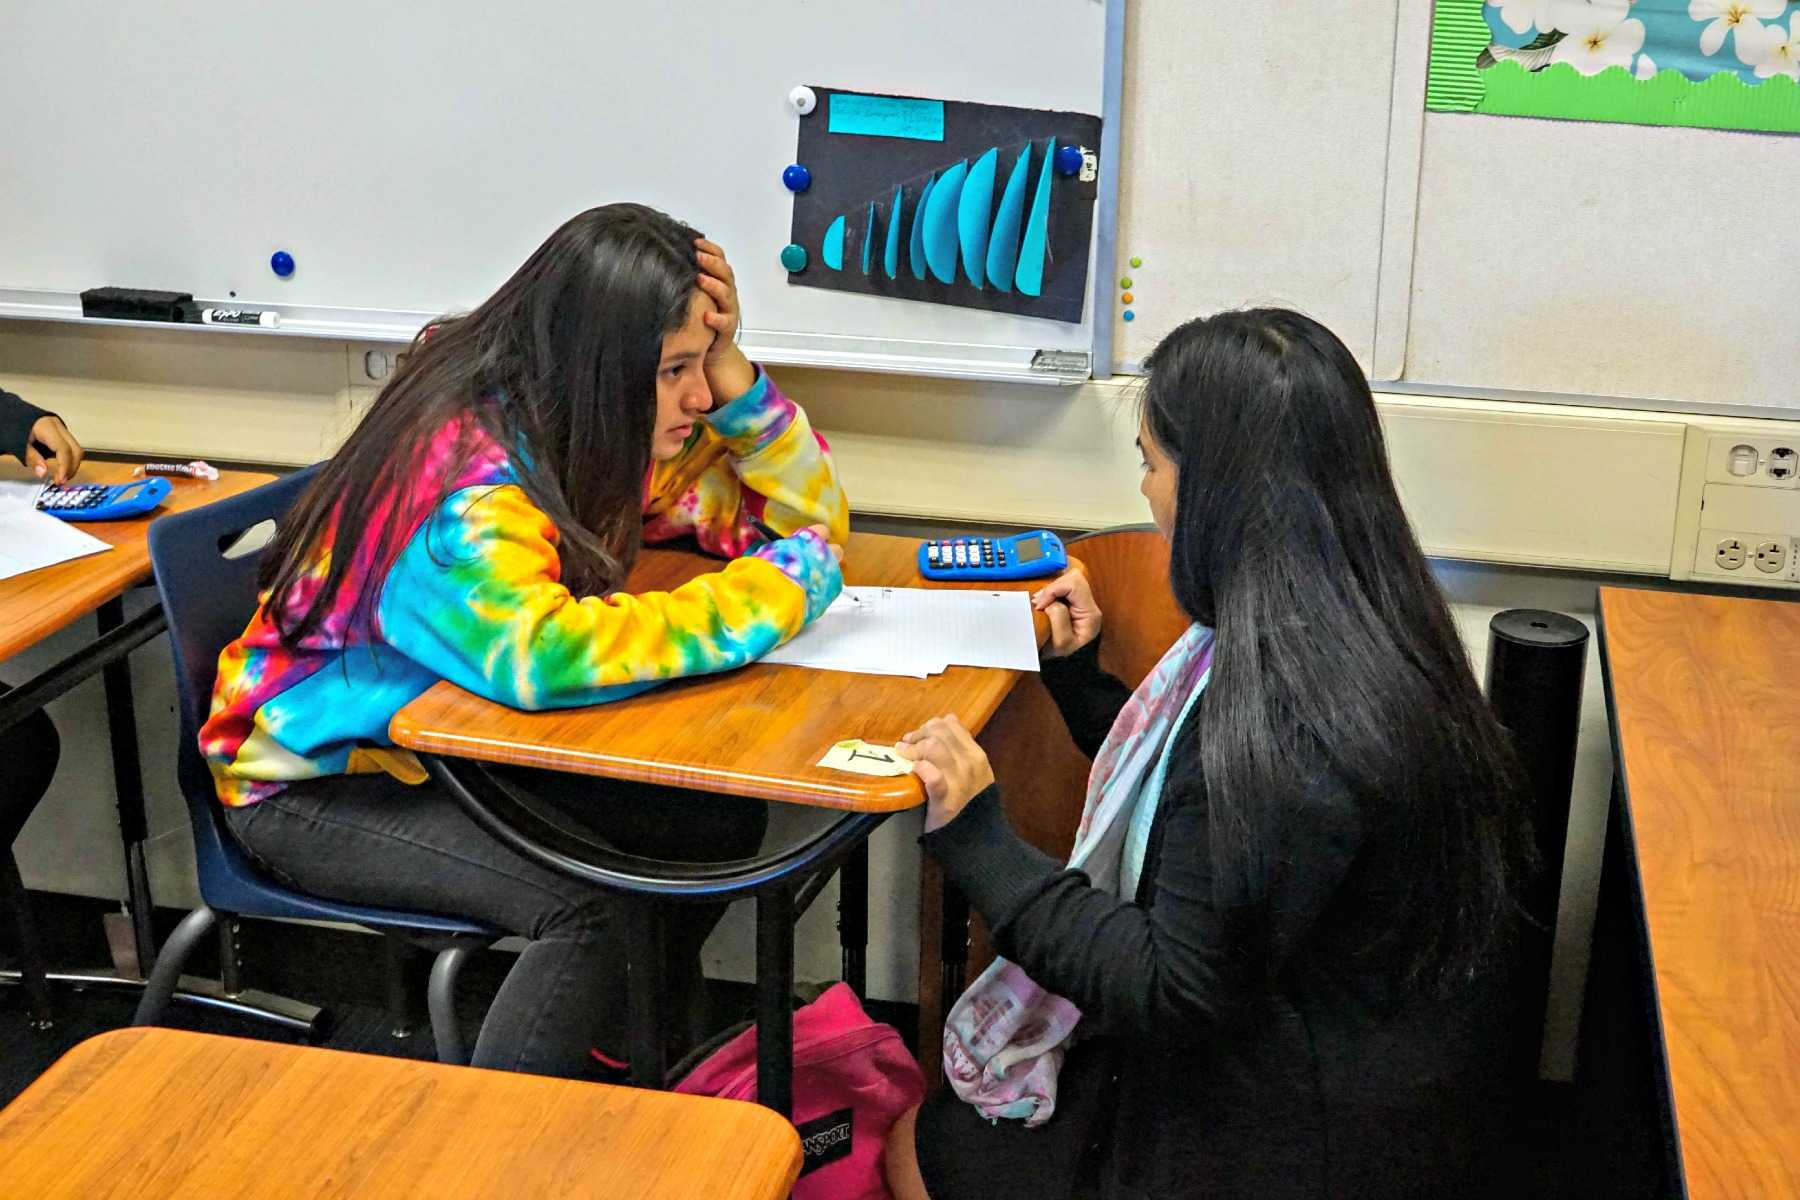 Algebra I Enhanced teacher Laraine Ignacio helps a student with a math problem. The school district recently passed a math placement policy as part of its larger effort to reduce the achievement gap among students.